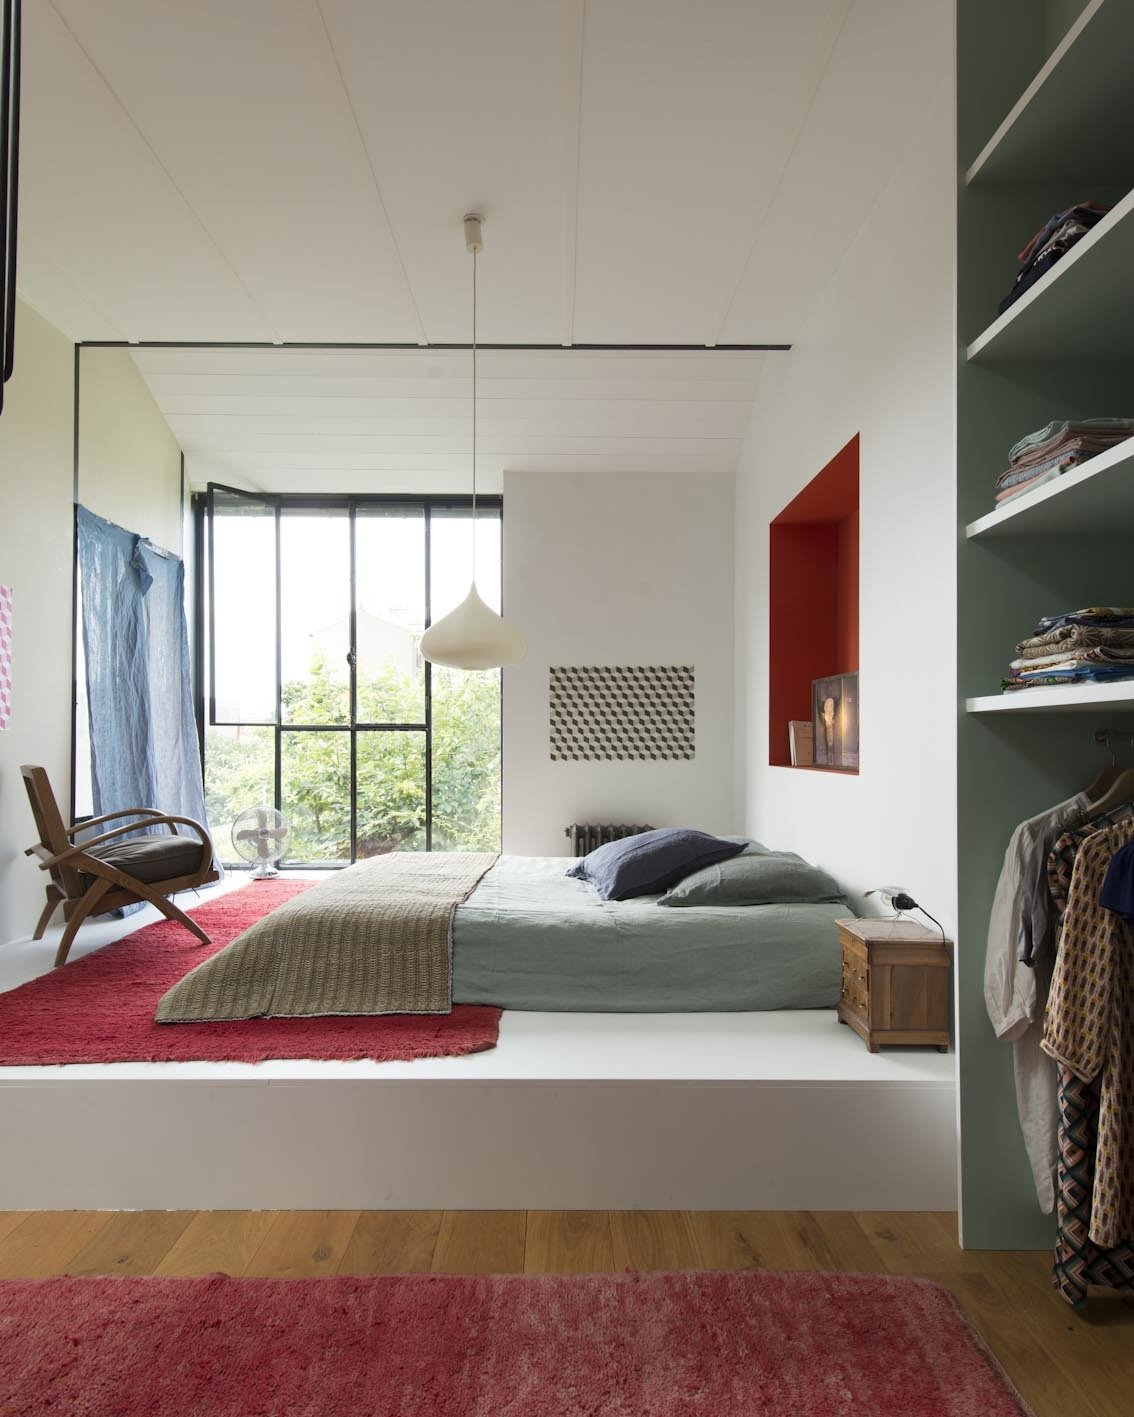 Bedroom, Bed, Chair, Pendant Lighting, Night Stands, Wardrobe, and Medium Hardwood Floor  Photo 2 of 9 in 8 Charming Parisian Apartments You'll Want to Book Right Now